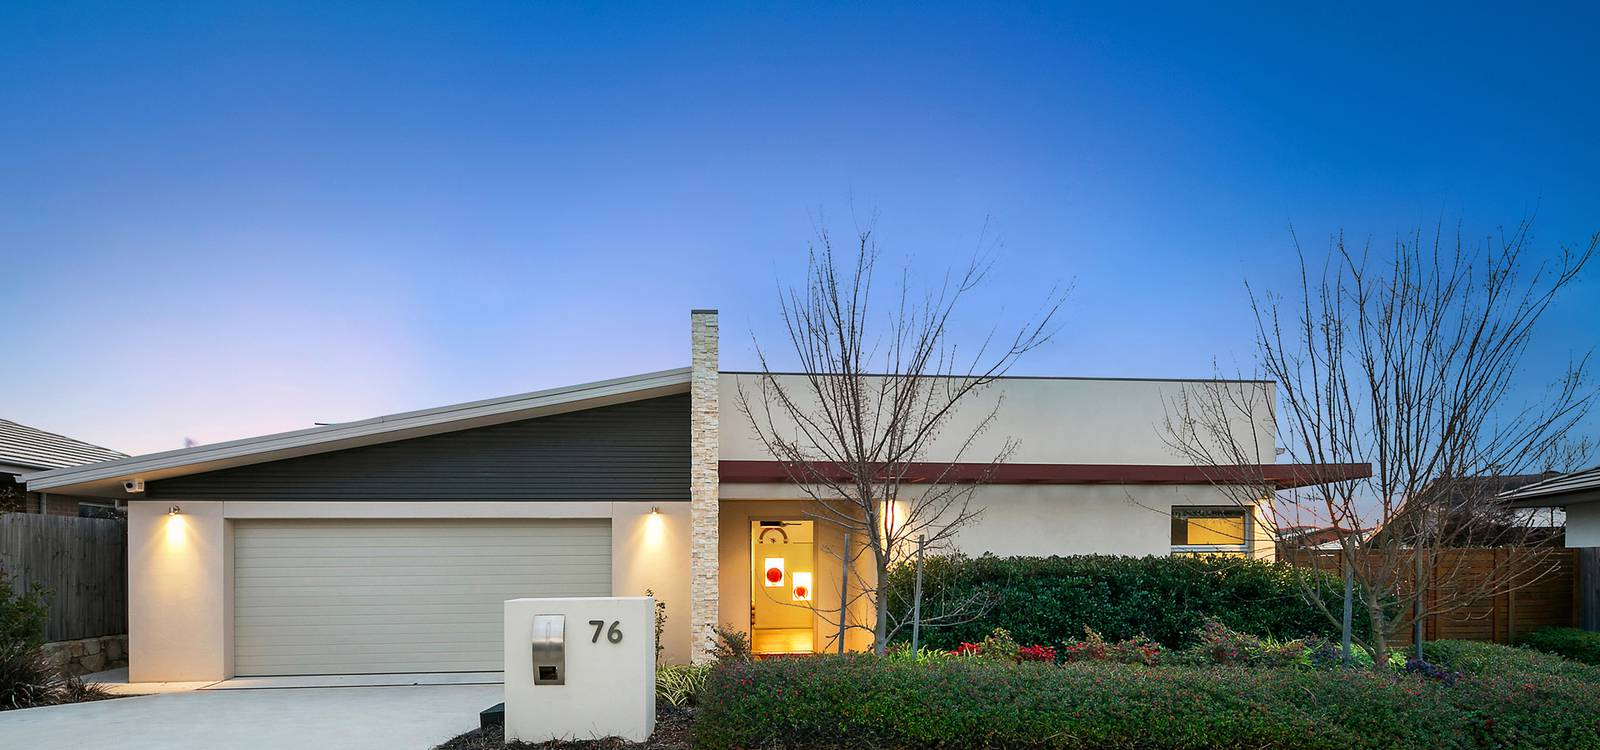 76 Durong Street CRACE, ACT 2911 - photo 1